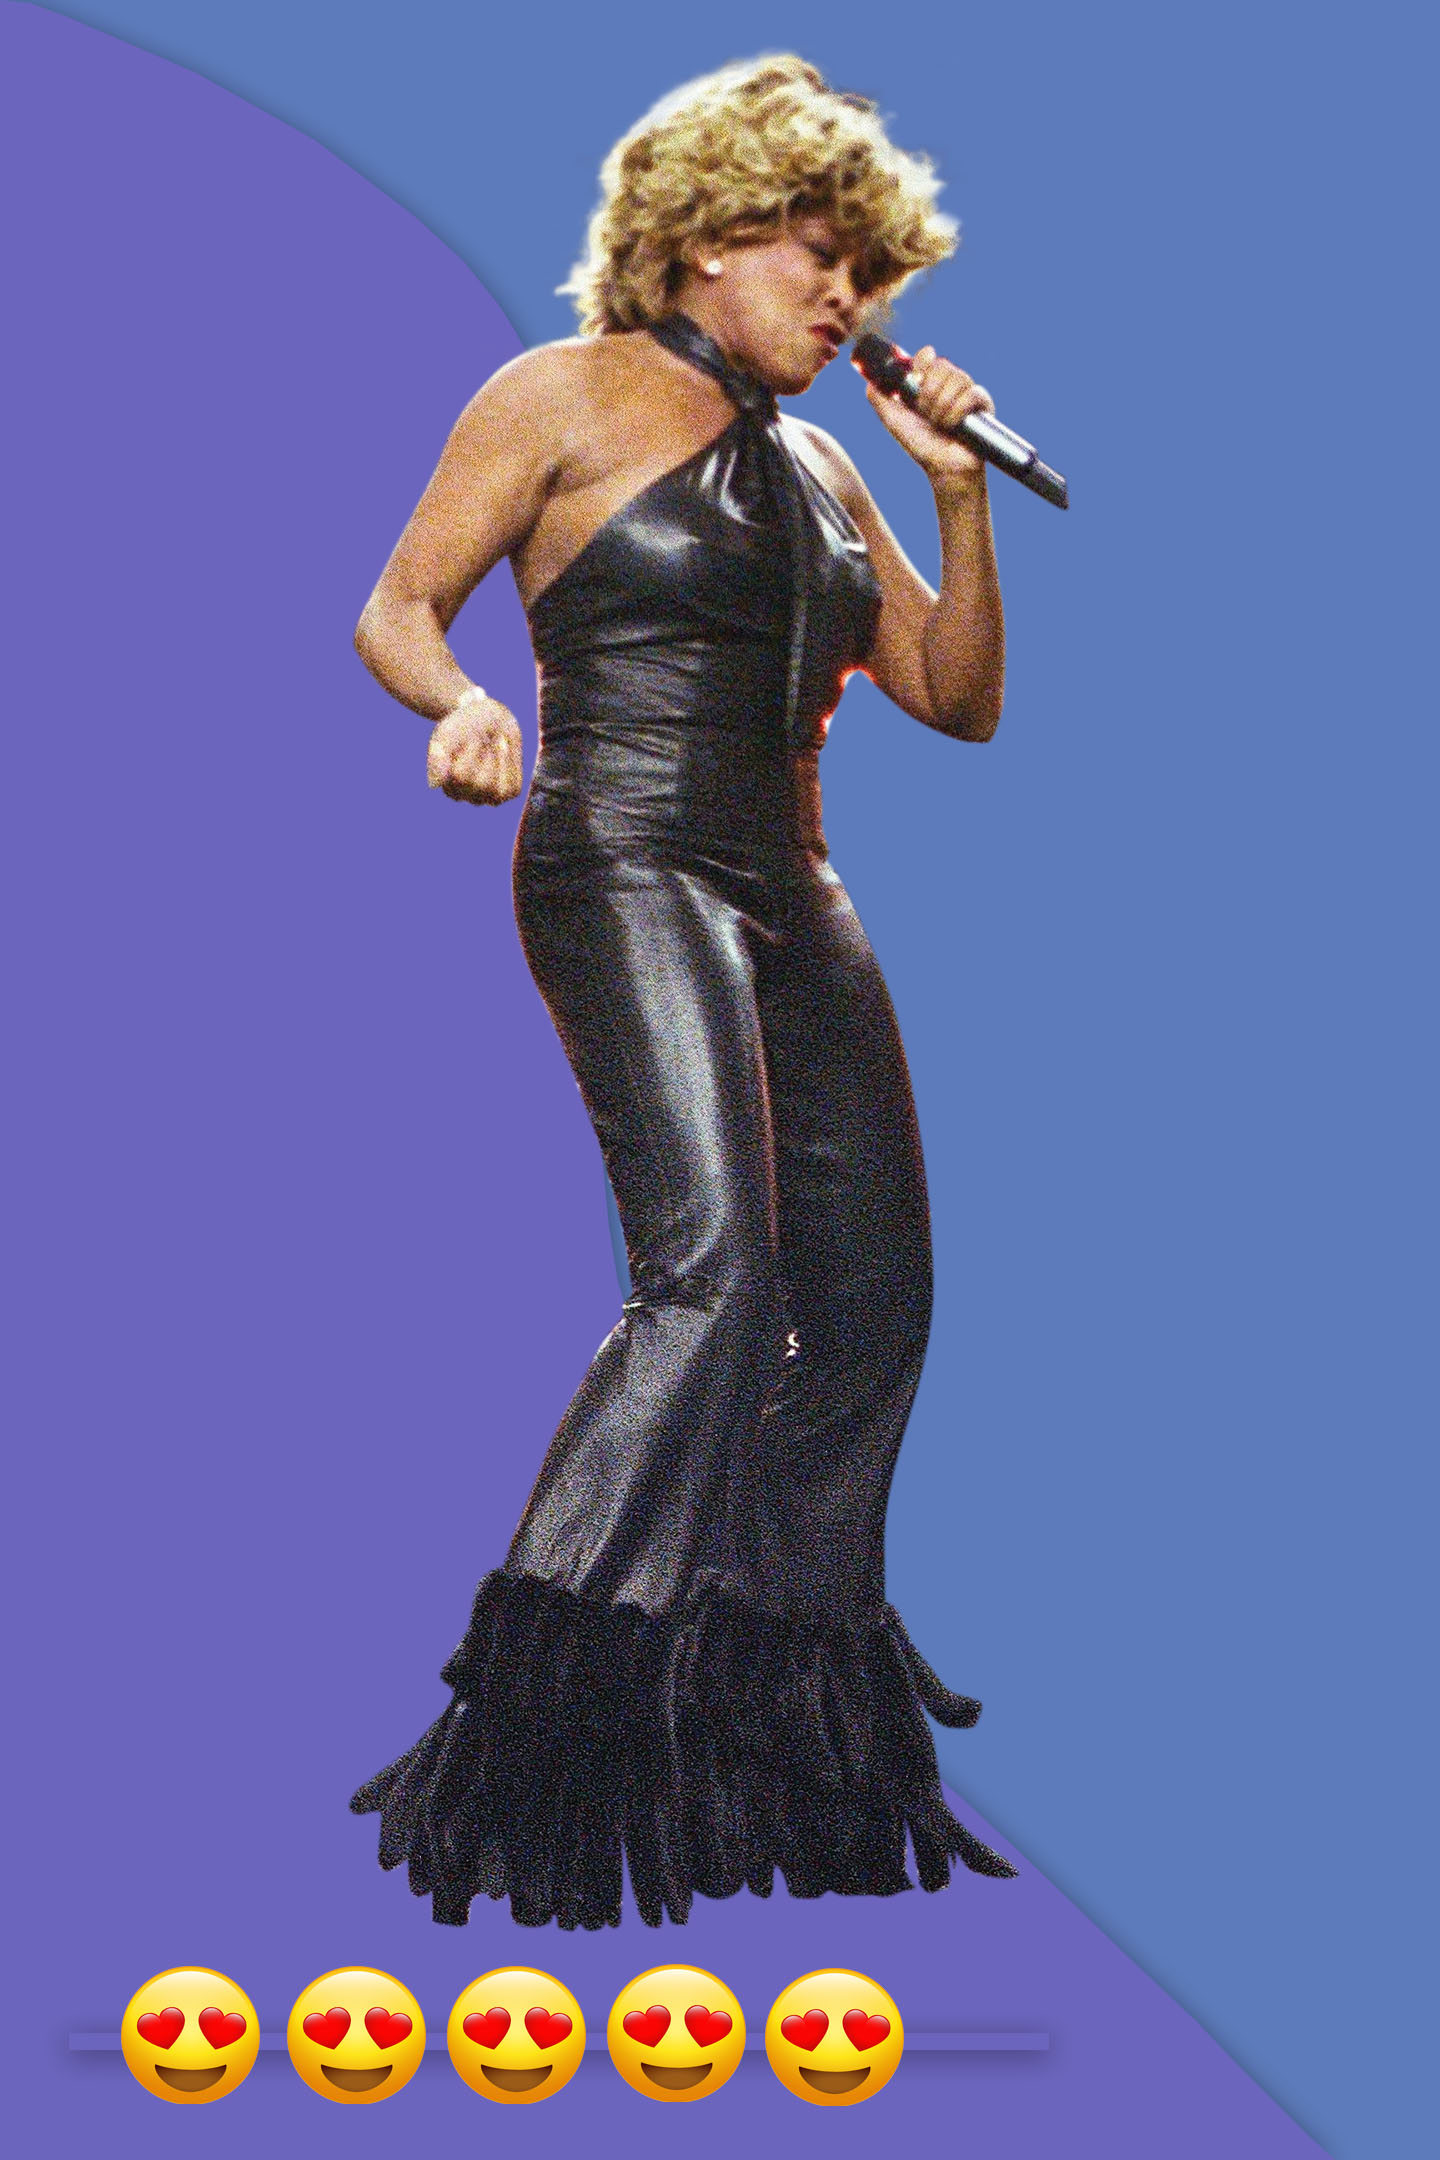 Tina Turner sings as part of the halftime show at Super Bowl XXXVI, 2000 in Atlanta.